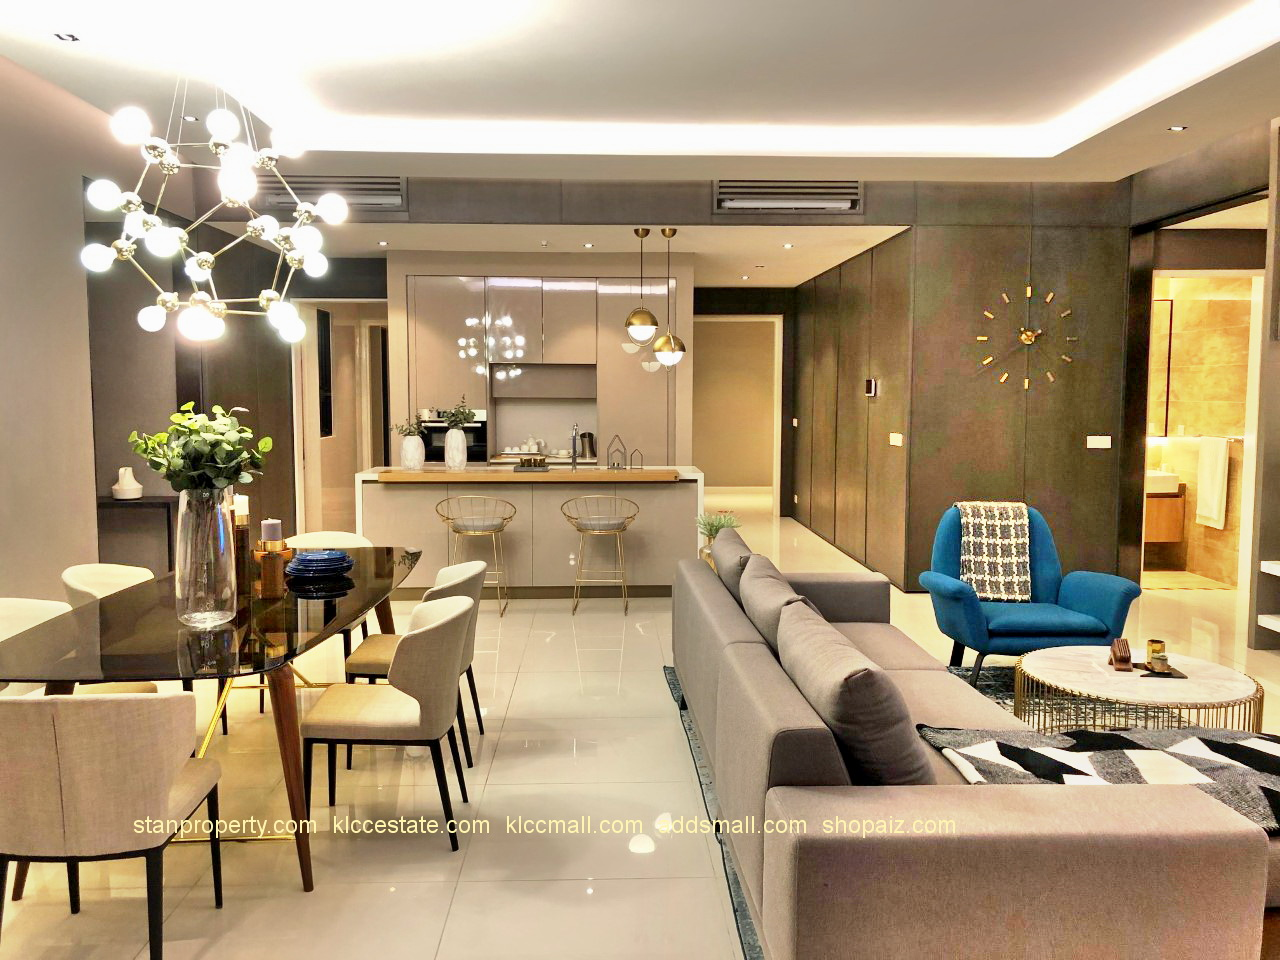 Seputeh Mid Valley Luxury Condo New Launch